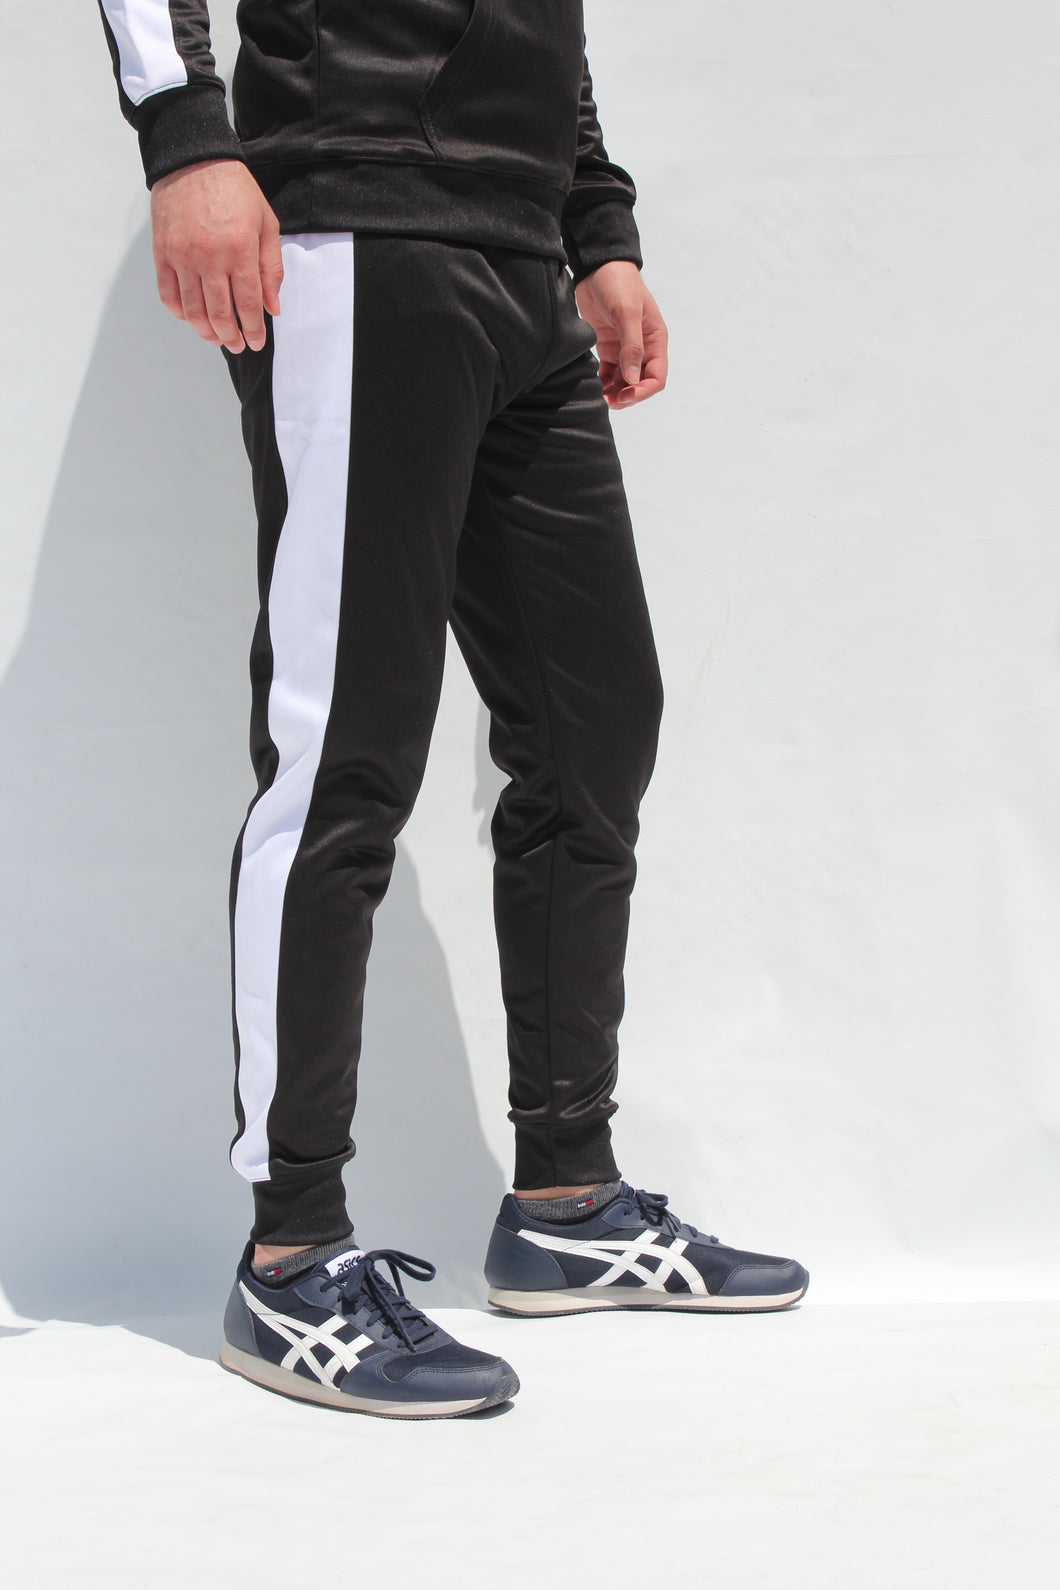 Men's Black track pants